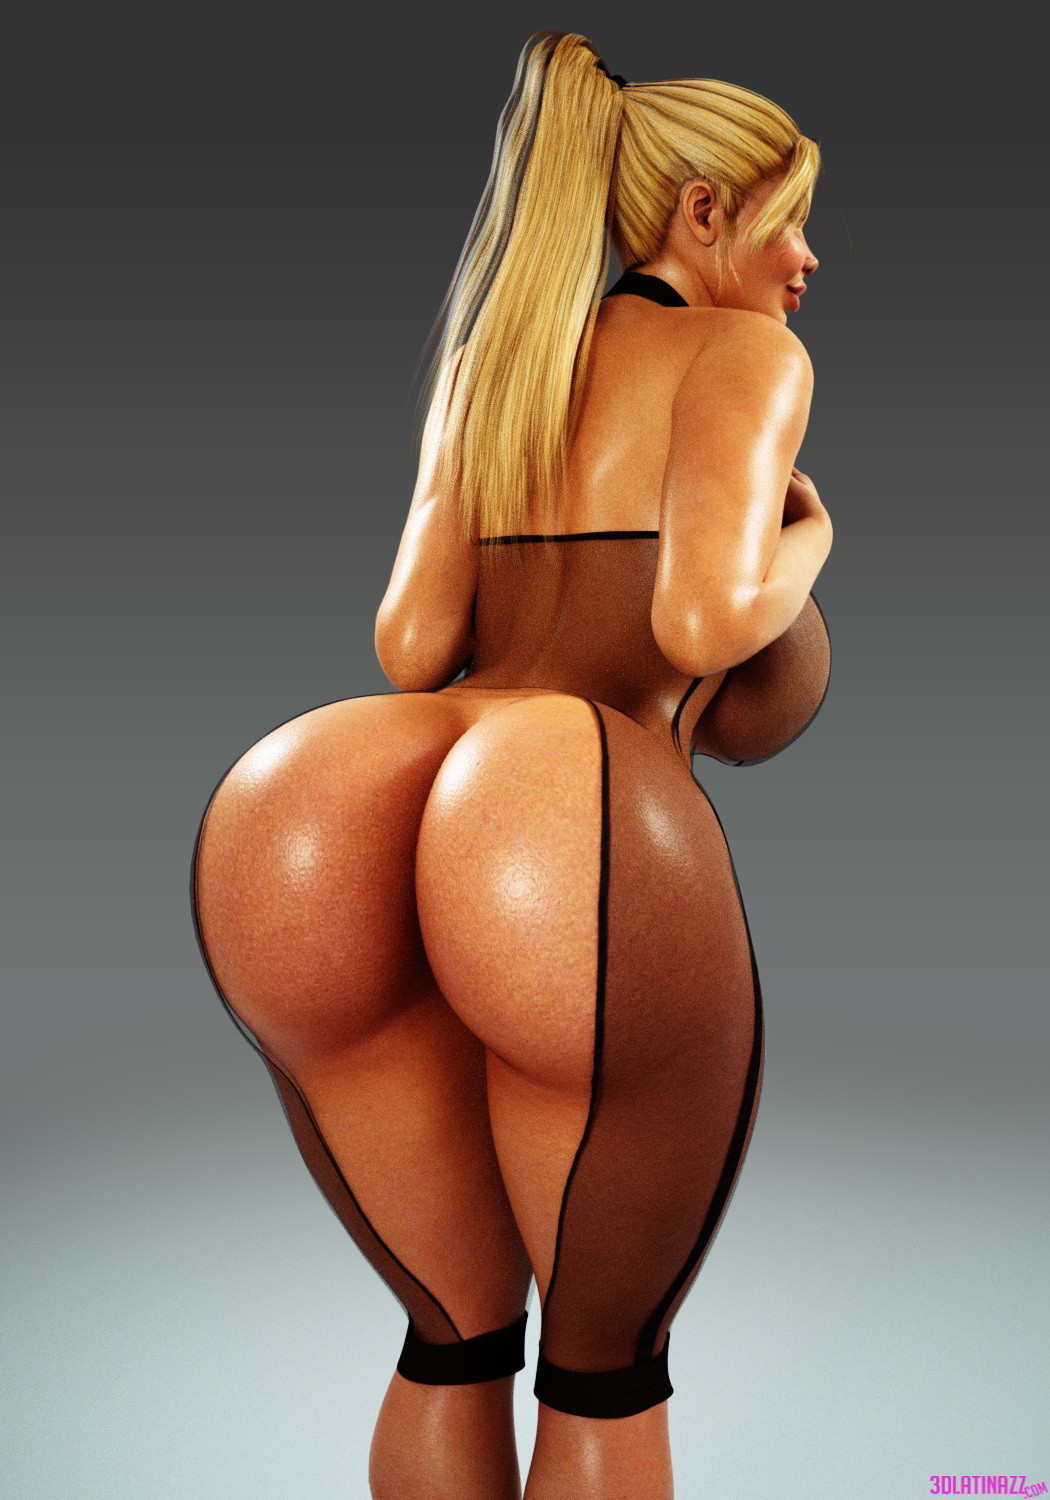 3d big ass photos naked photos